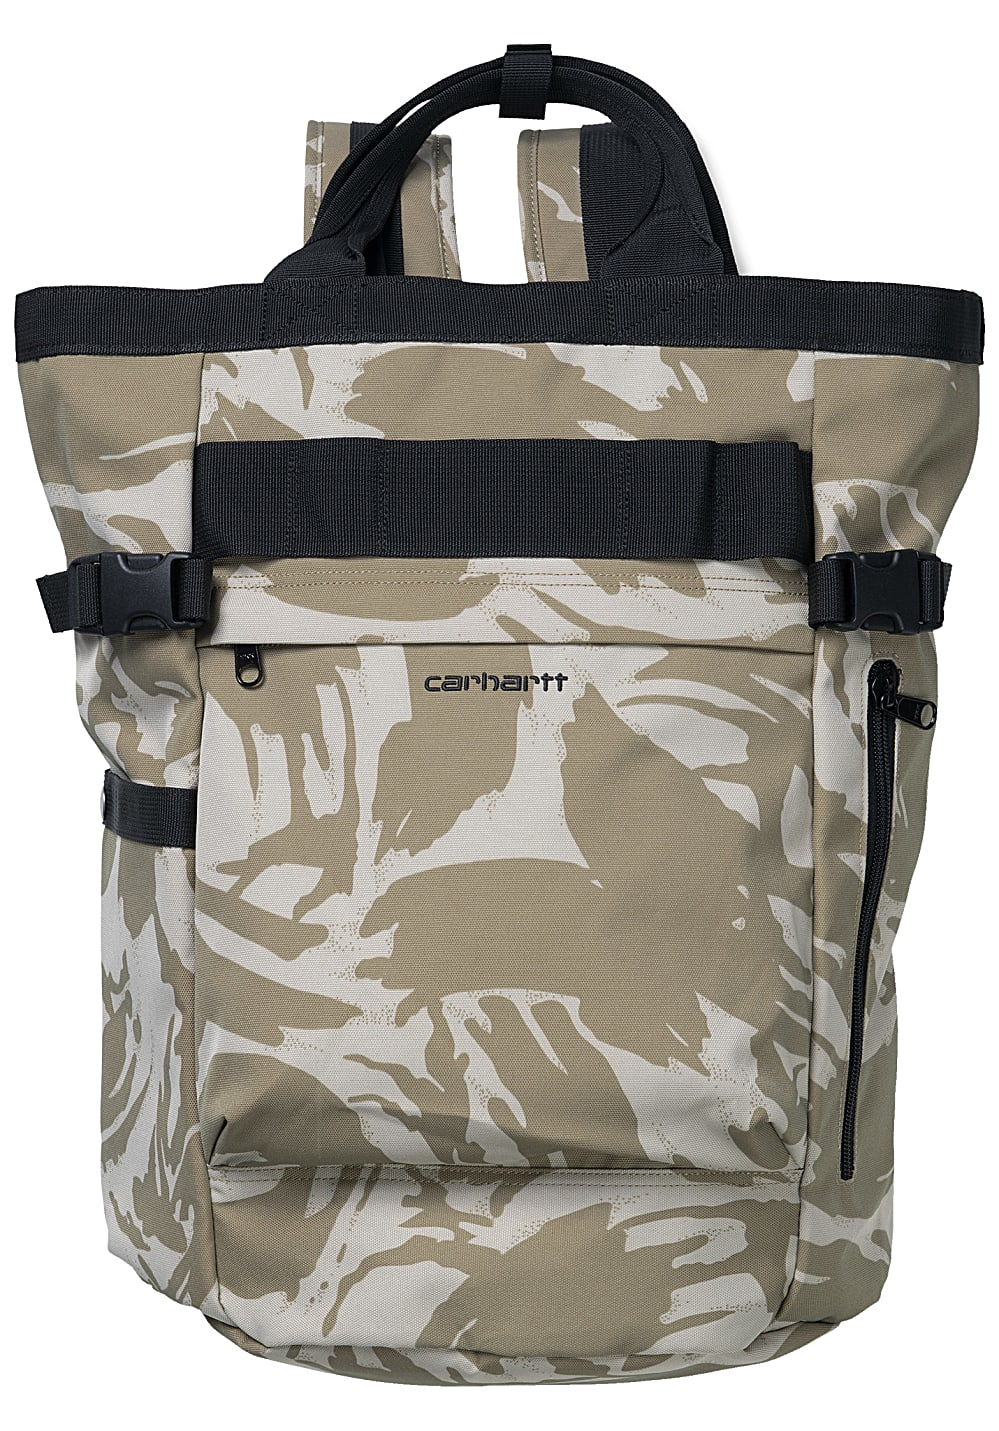 4bc1d94851f42 Carhartt WIP Payton Carrier 24L - Rucksack - Camouflage - Planet Sports